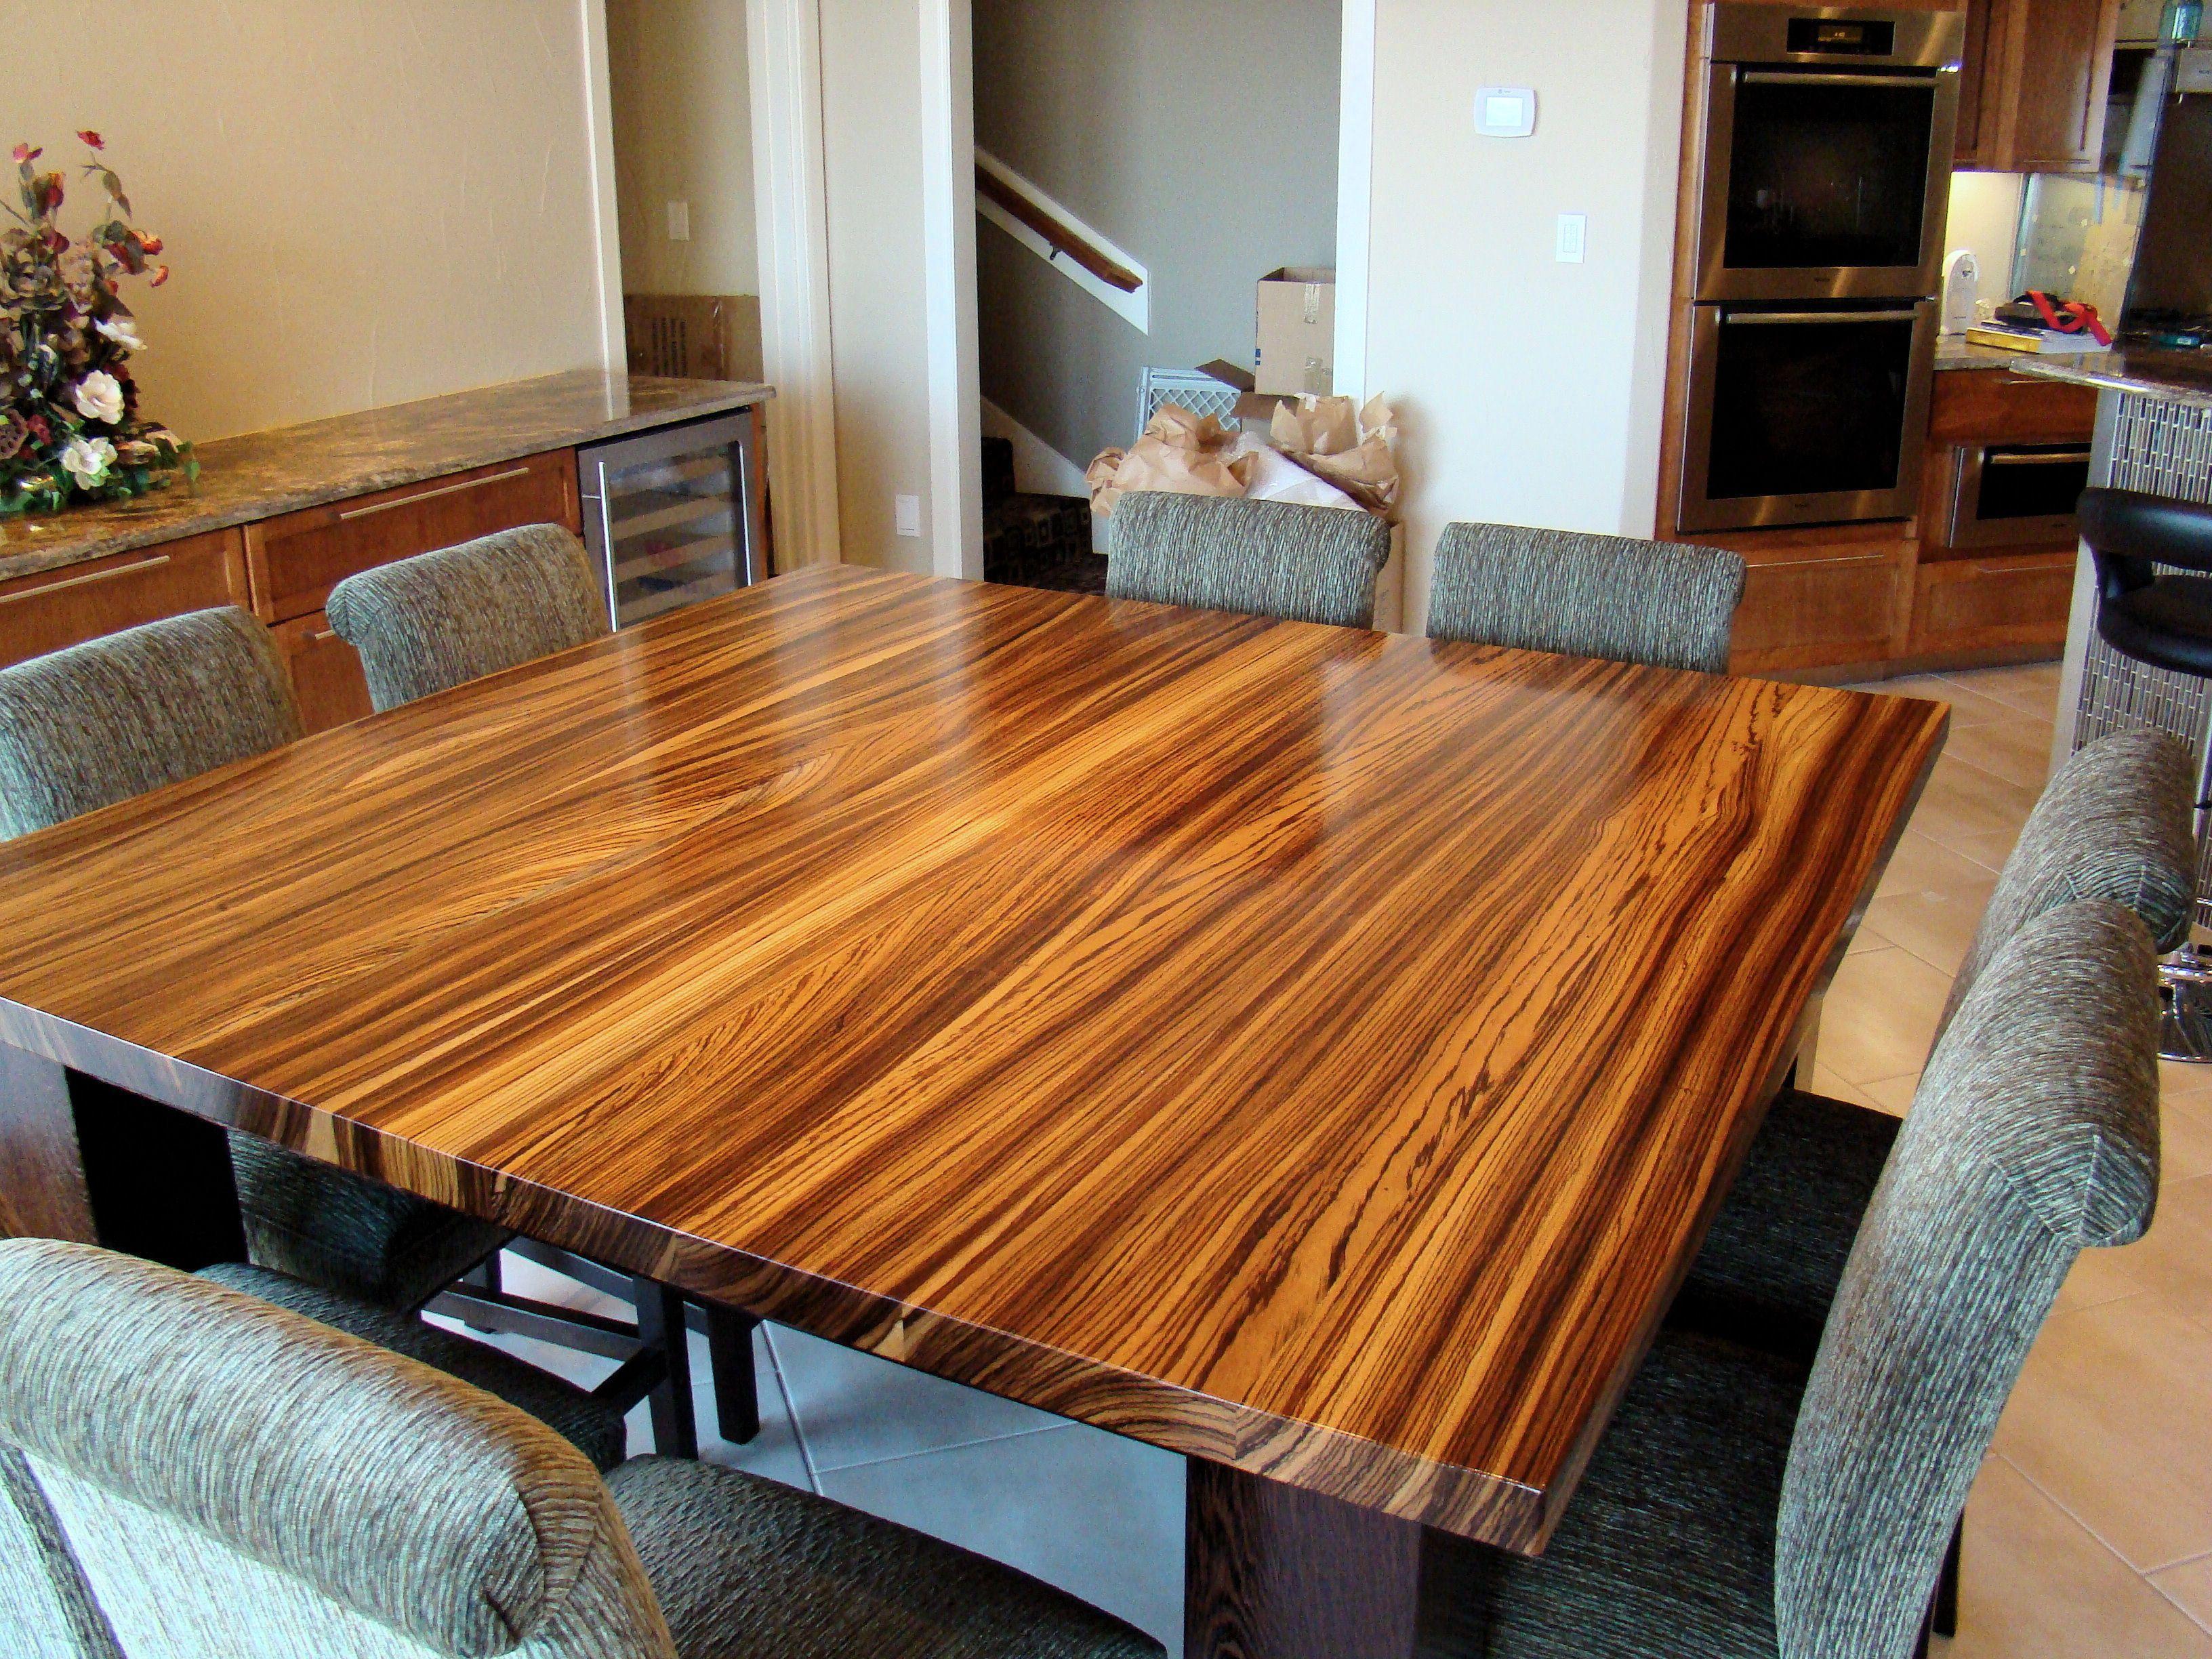 Custom Zebrawood Table With A Solid Wenge Base This Table